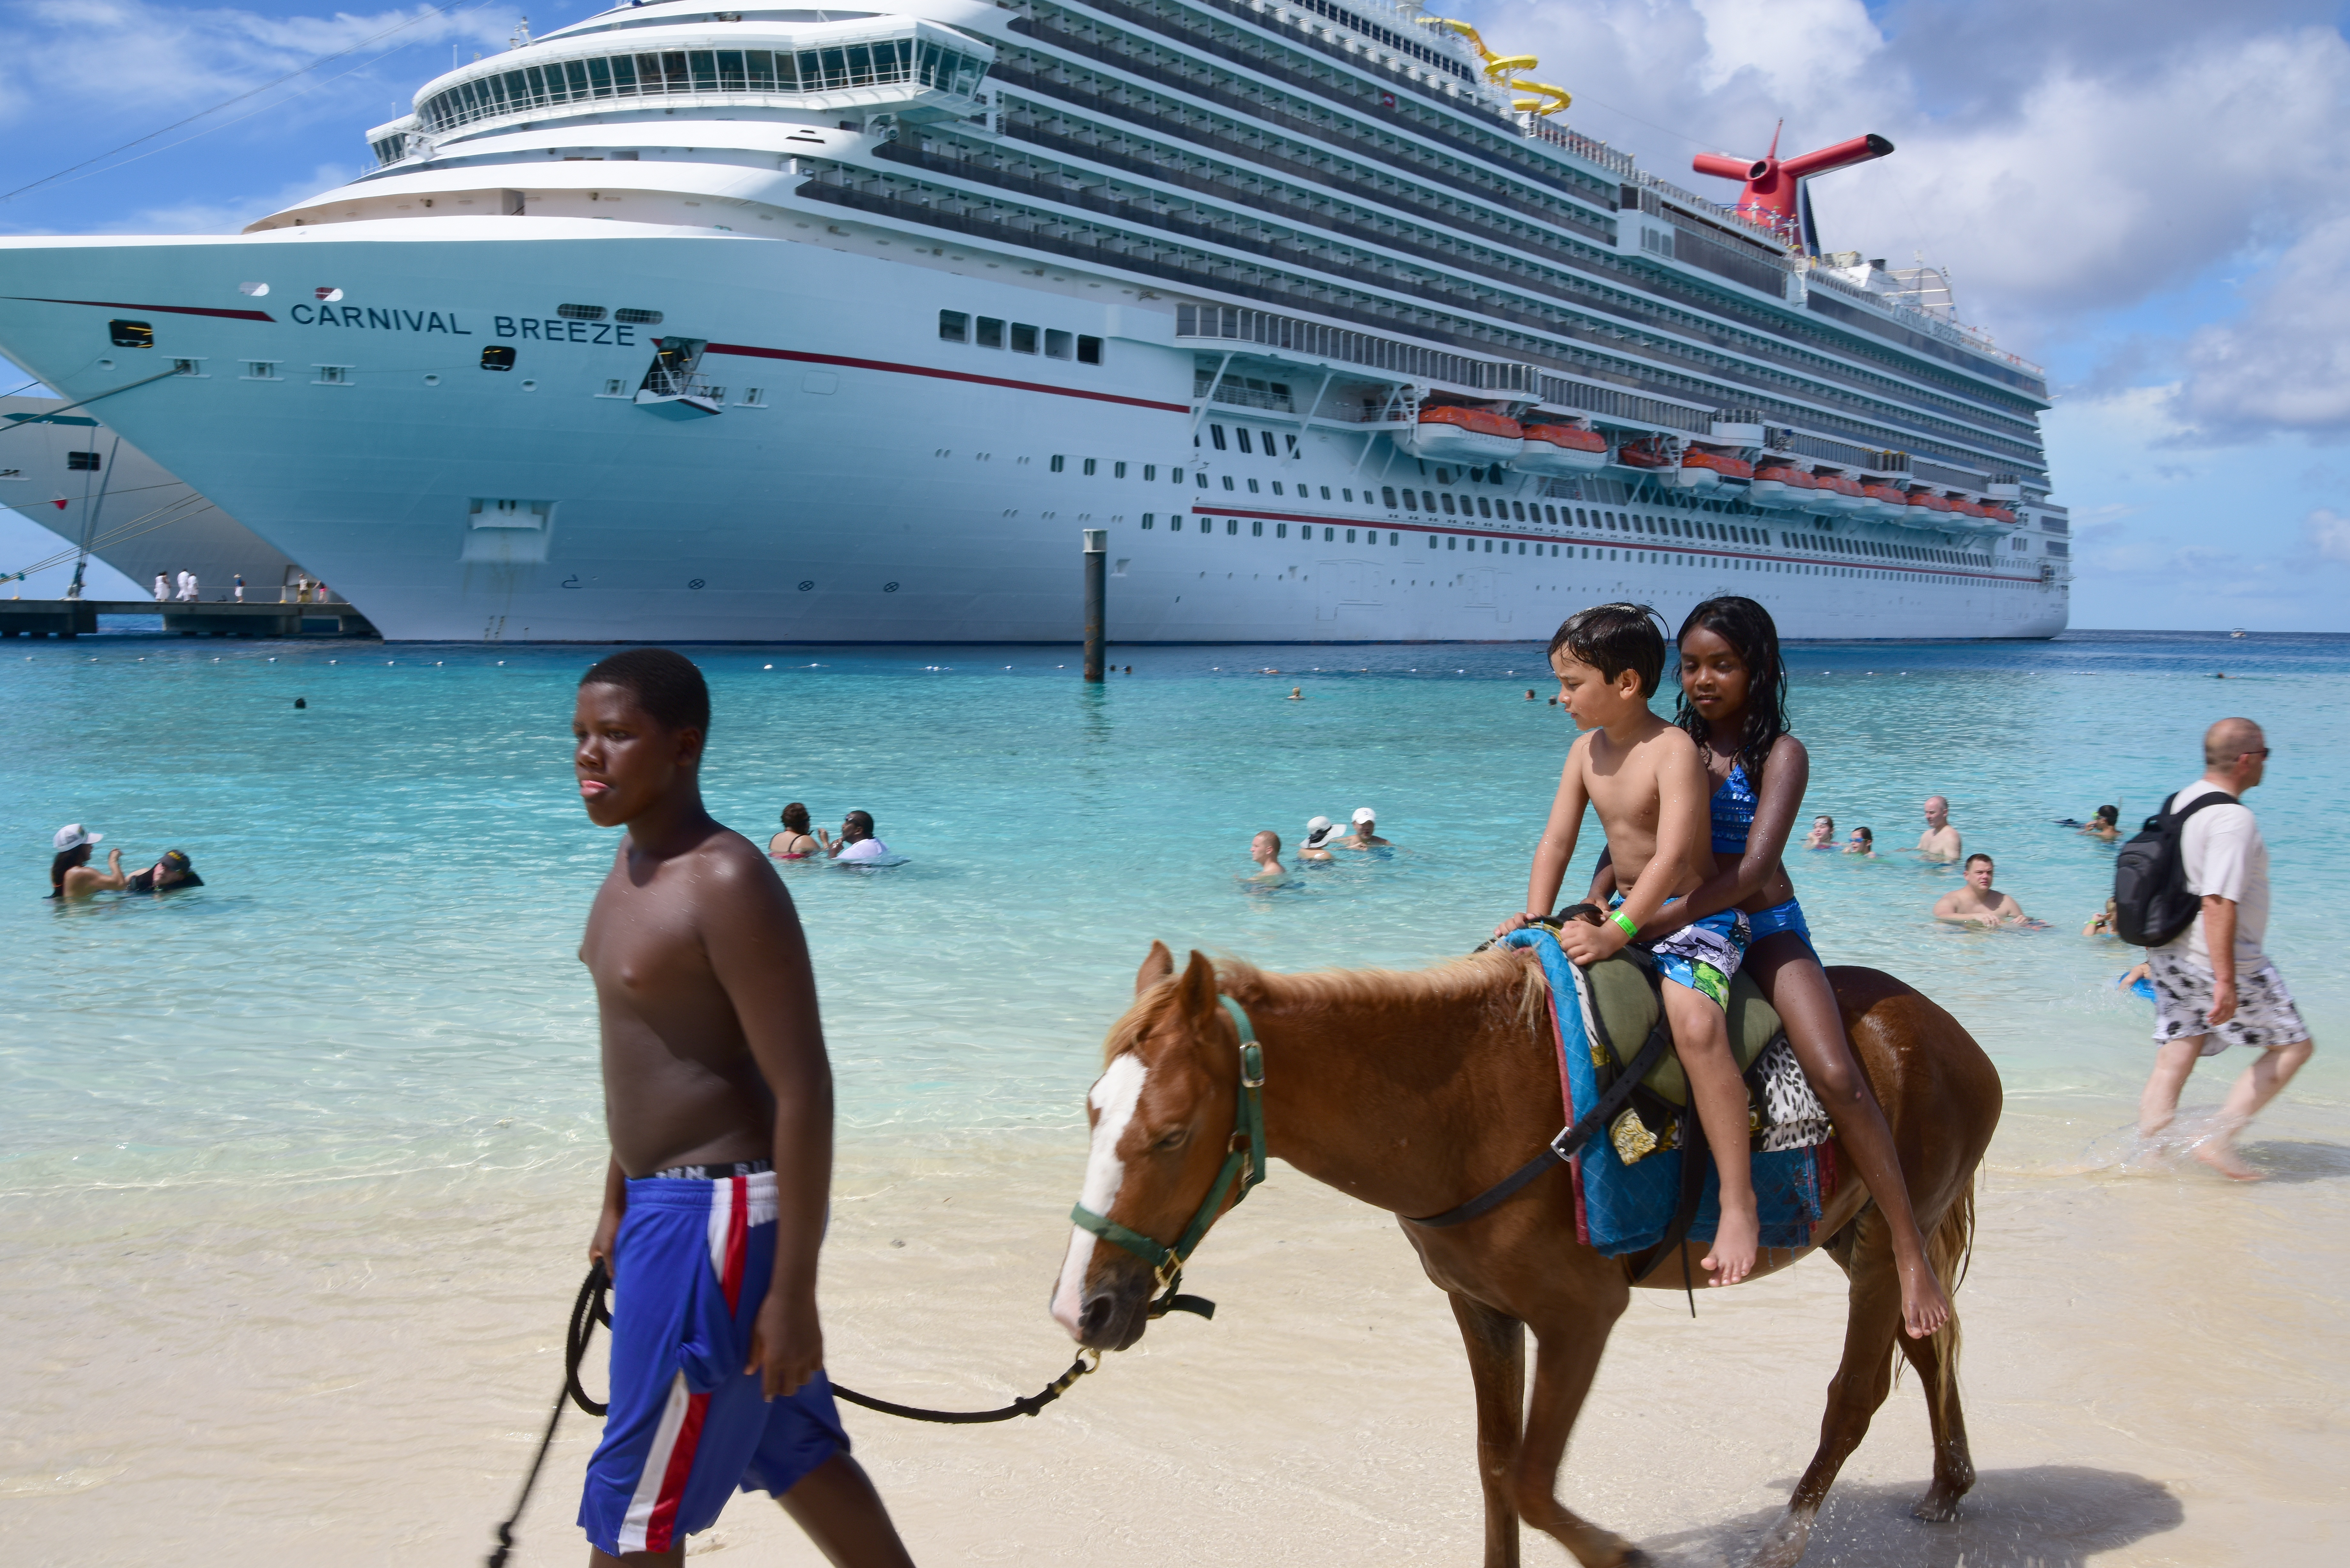 Planning A Cruise Whilst Pregnant Or With A Baby In Tow Seems Easy In Theory, But I've Attempted Both And Found Out It Wasn't As Simple As I Thought Due To Policies The Cruise Liners Had. Here Are A Few Of The Things You Need To Know.